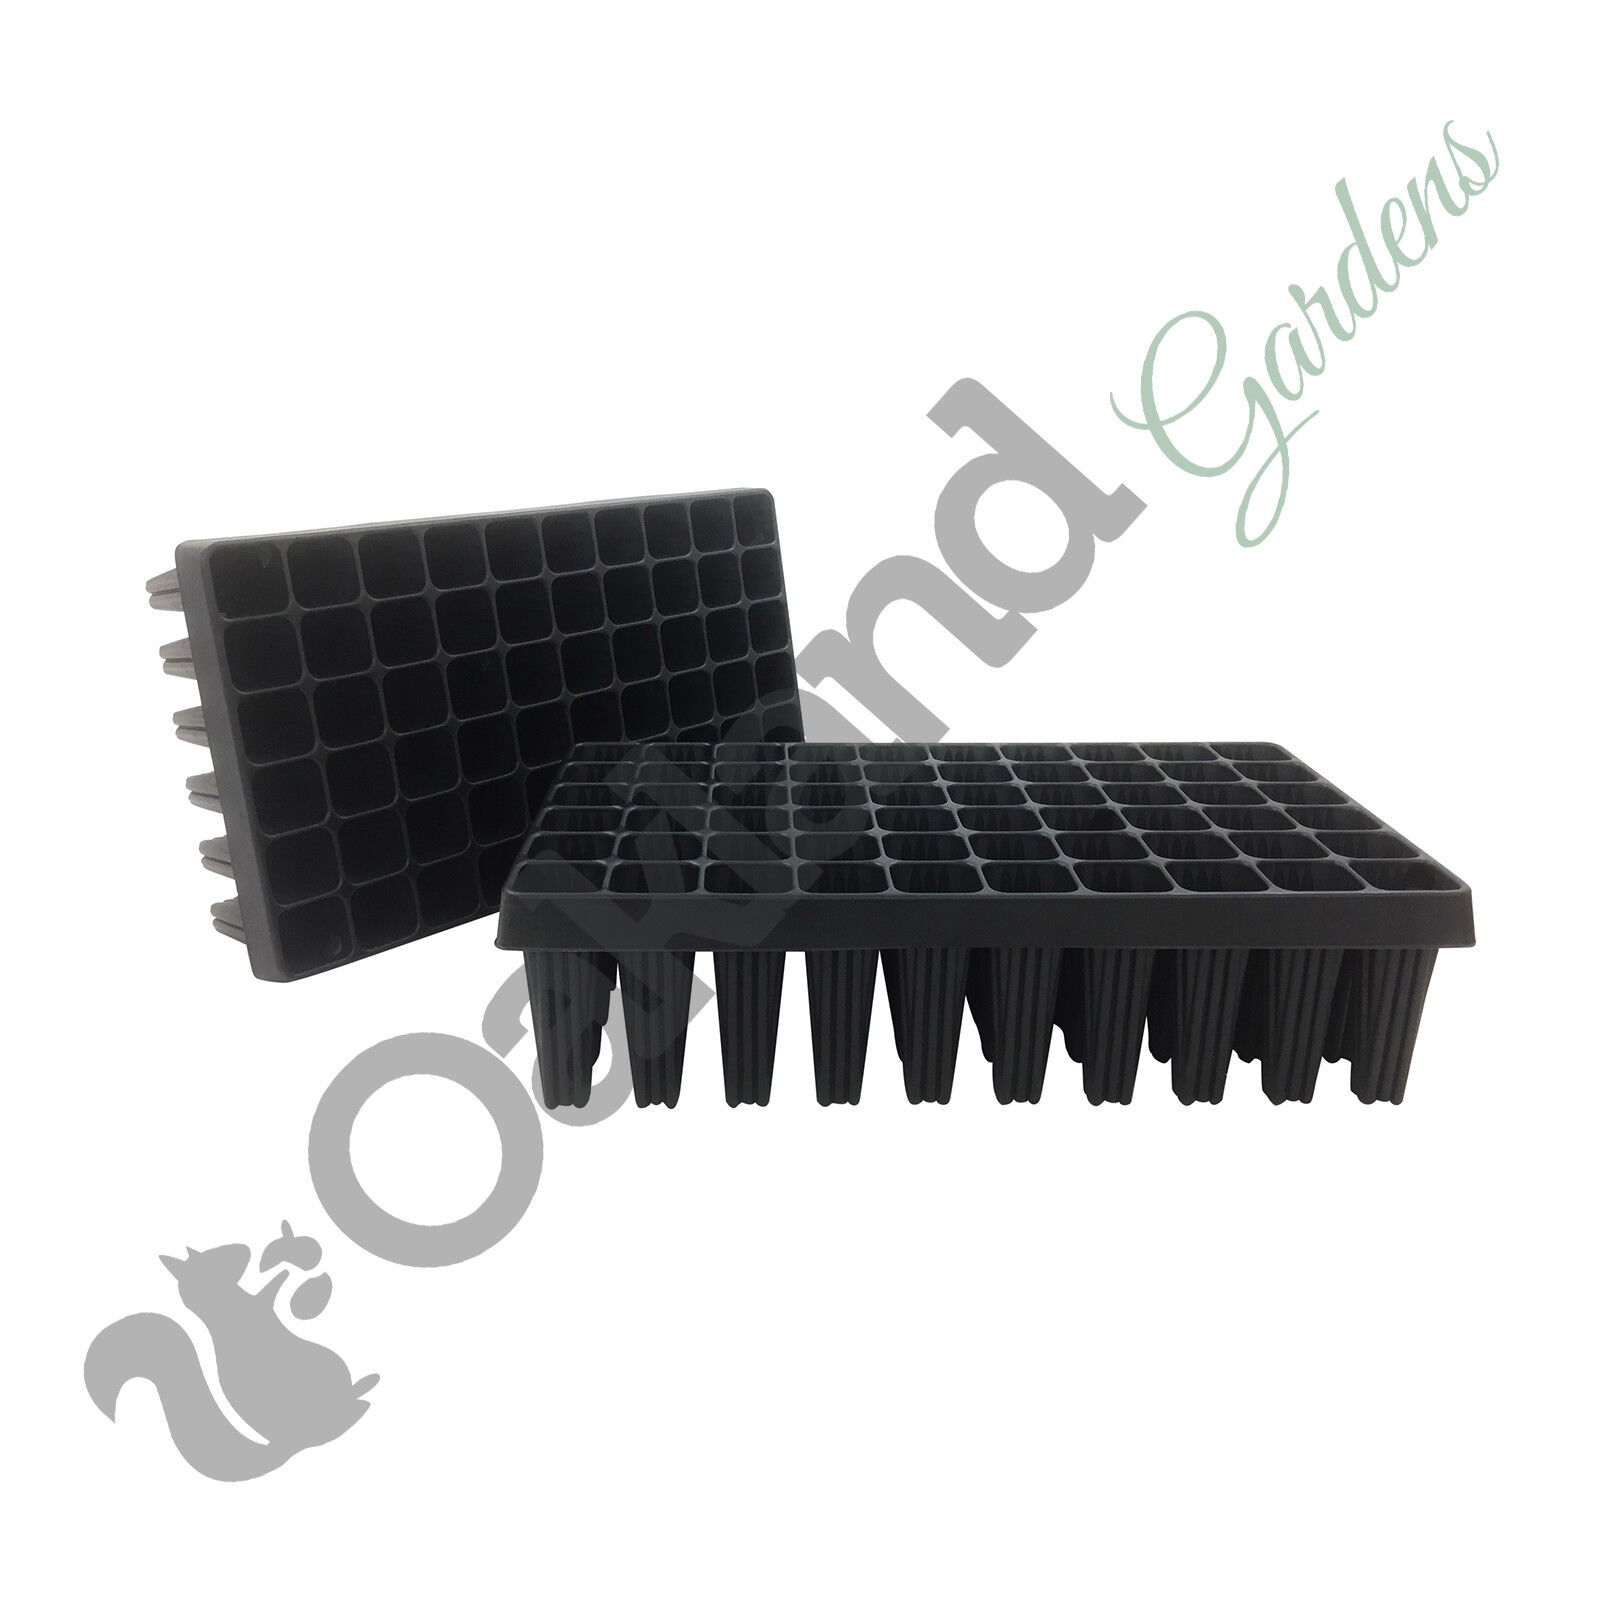 1 x 60 Cell Deep Rootrainers Plug Plant Seed Tray Root trainers Extra Large